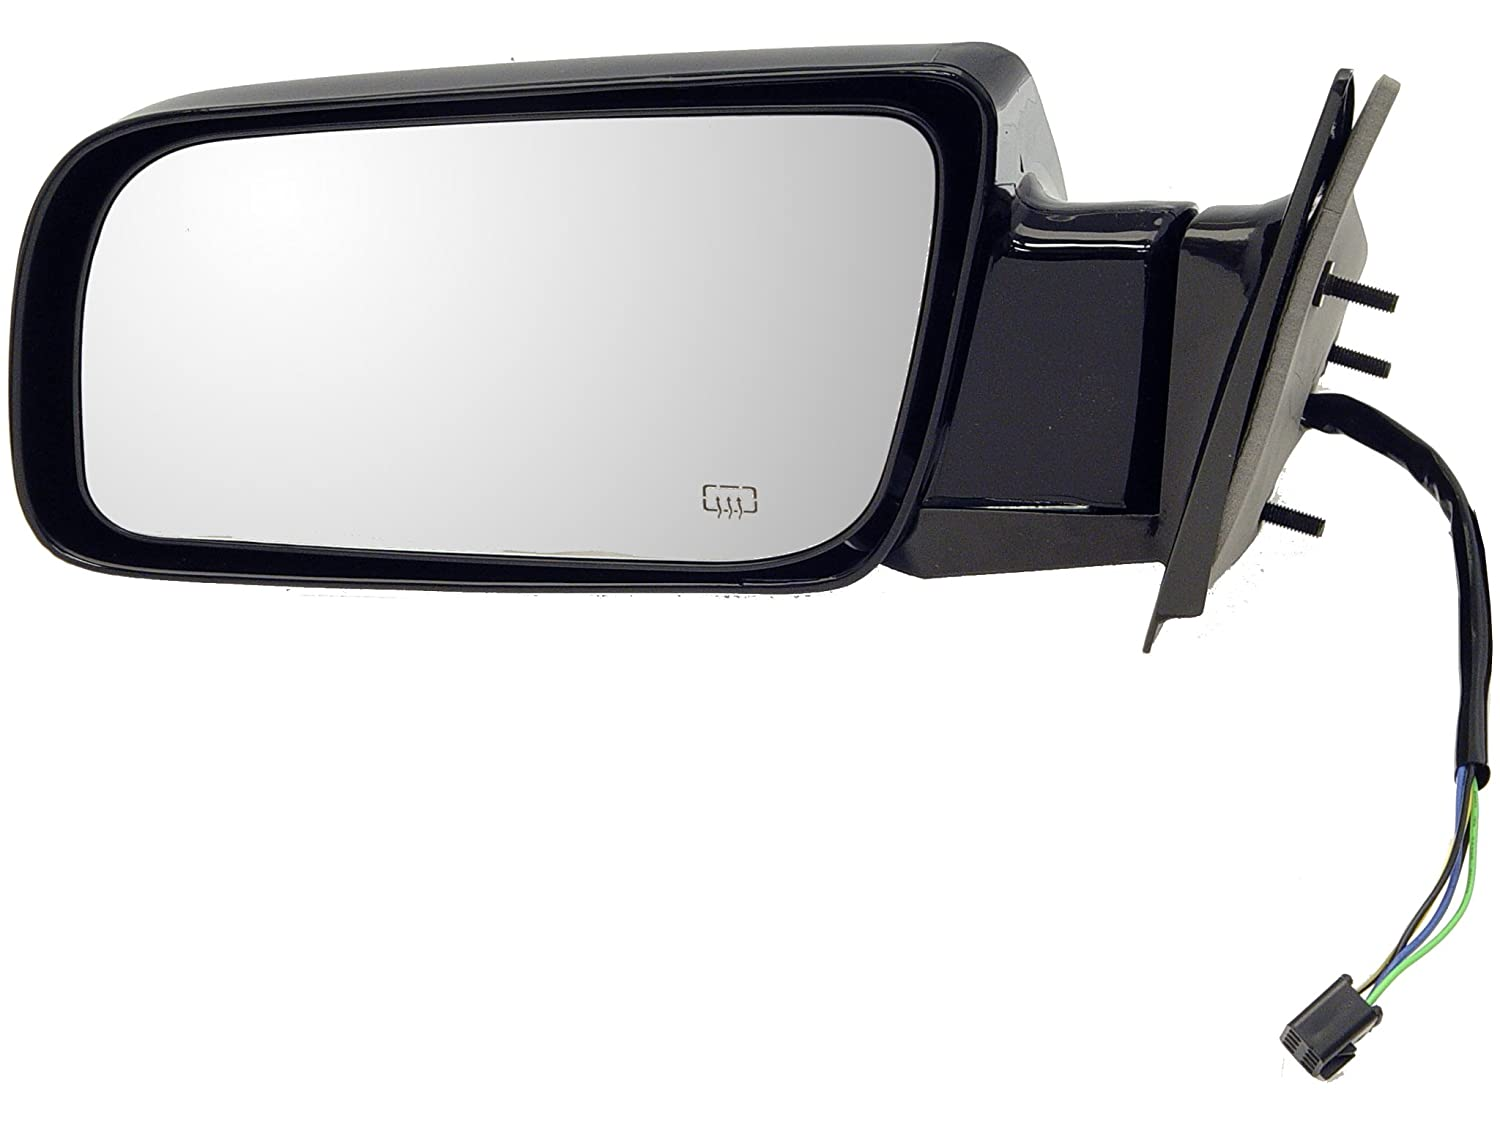 Dorman 955-1157 Chevrolet/GMC Driver Side Powered Heated Fold Away Side View Mirror